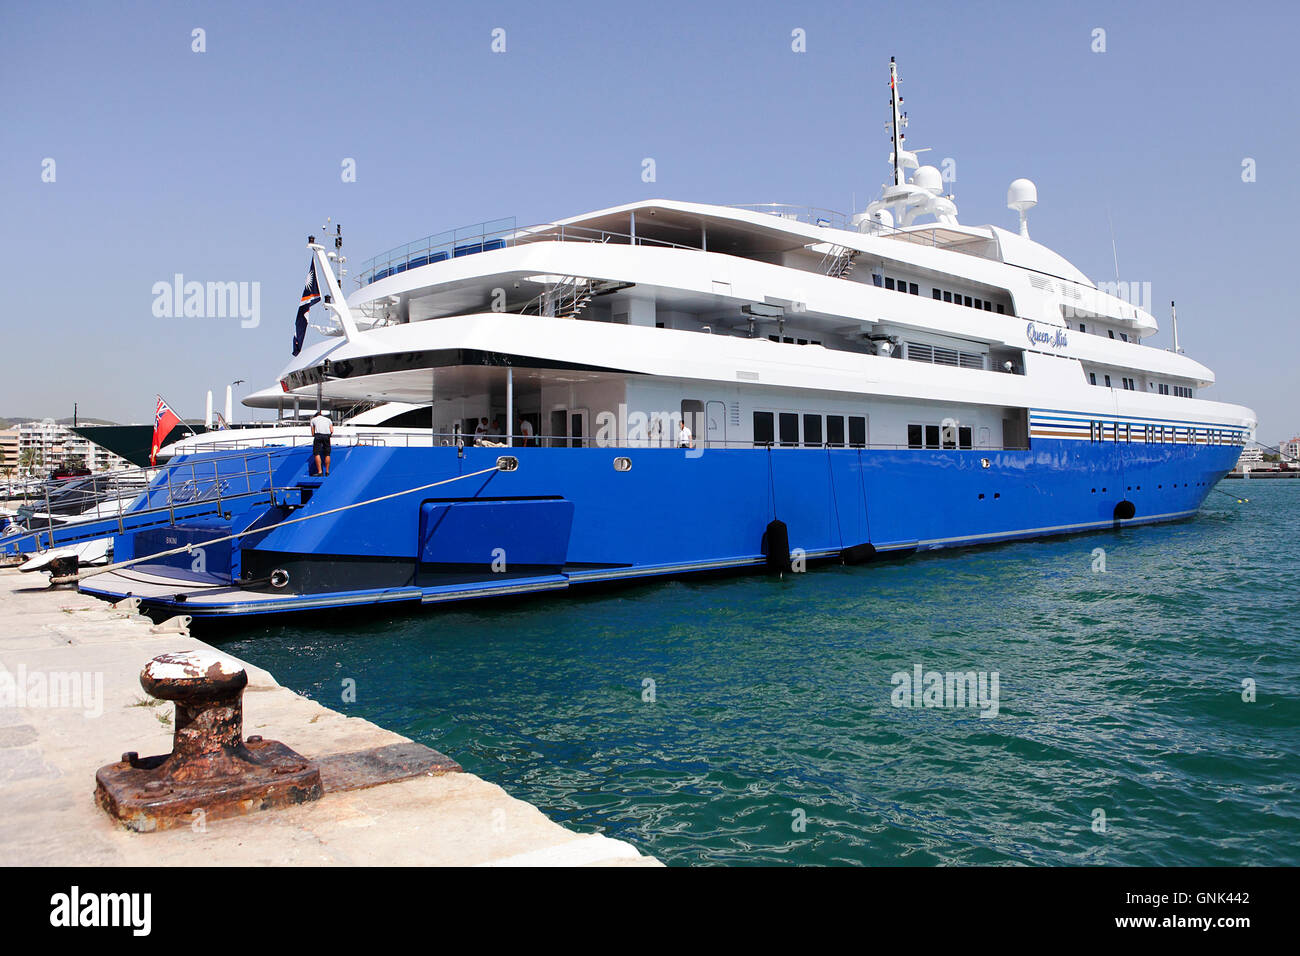 Various luxury yachts at their moorings in the Port at Old Town Ibiza (Eivissa). Seen here is the 'QUEEN MIRI'. - Stock Image